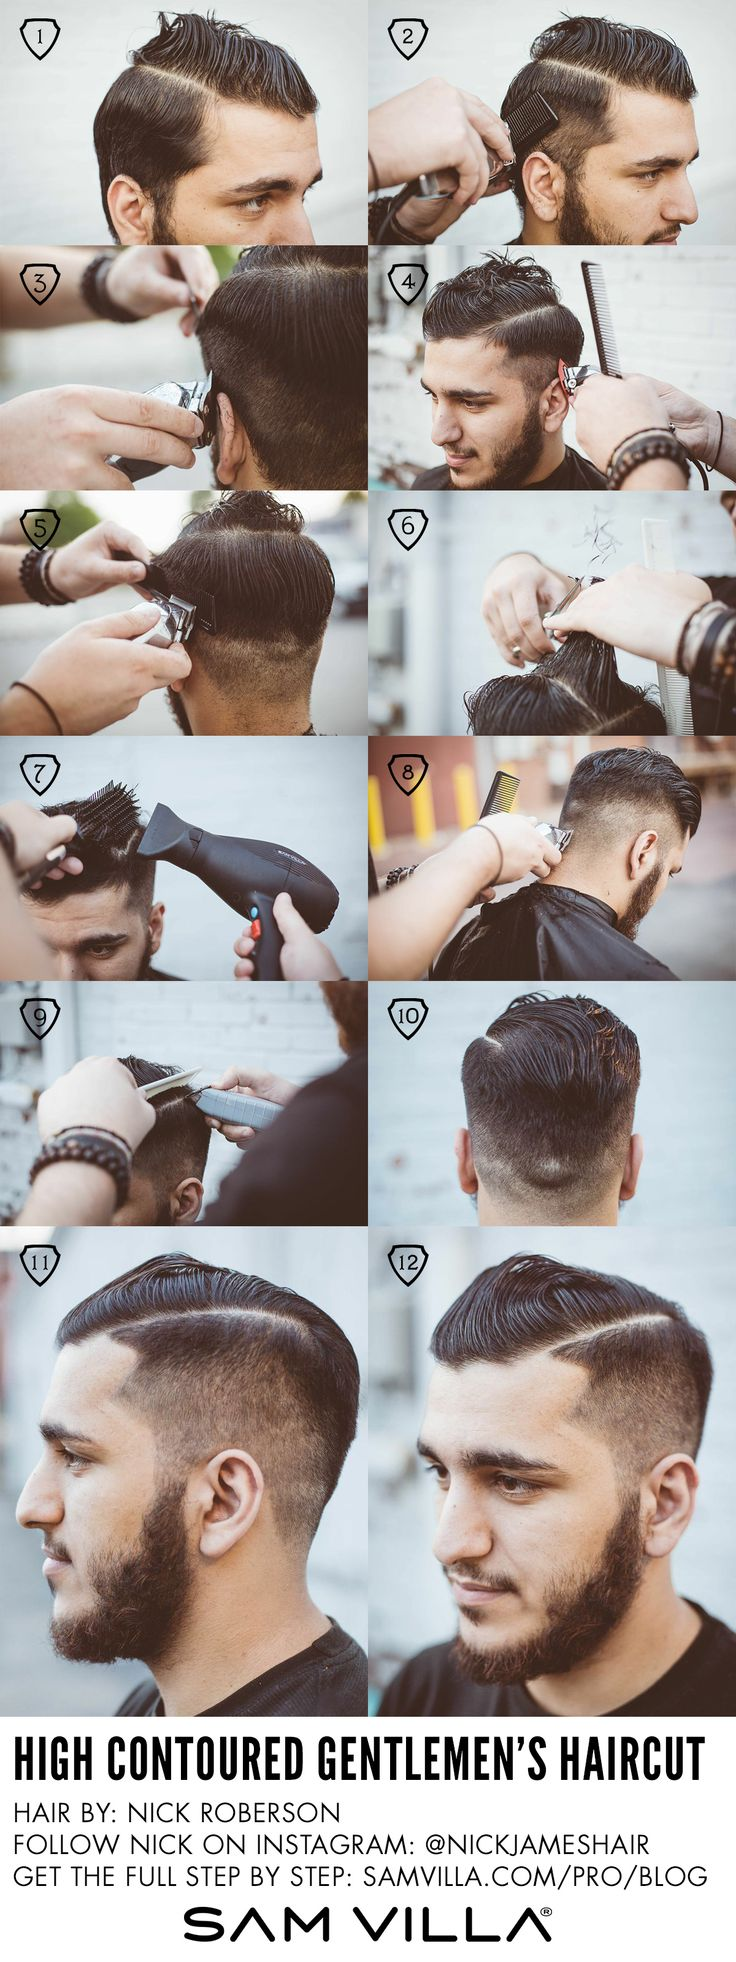 nick-james-high-contoured-haircut-step-by-step-for-sam-villa